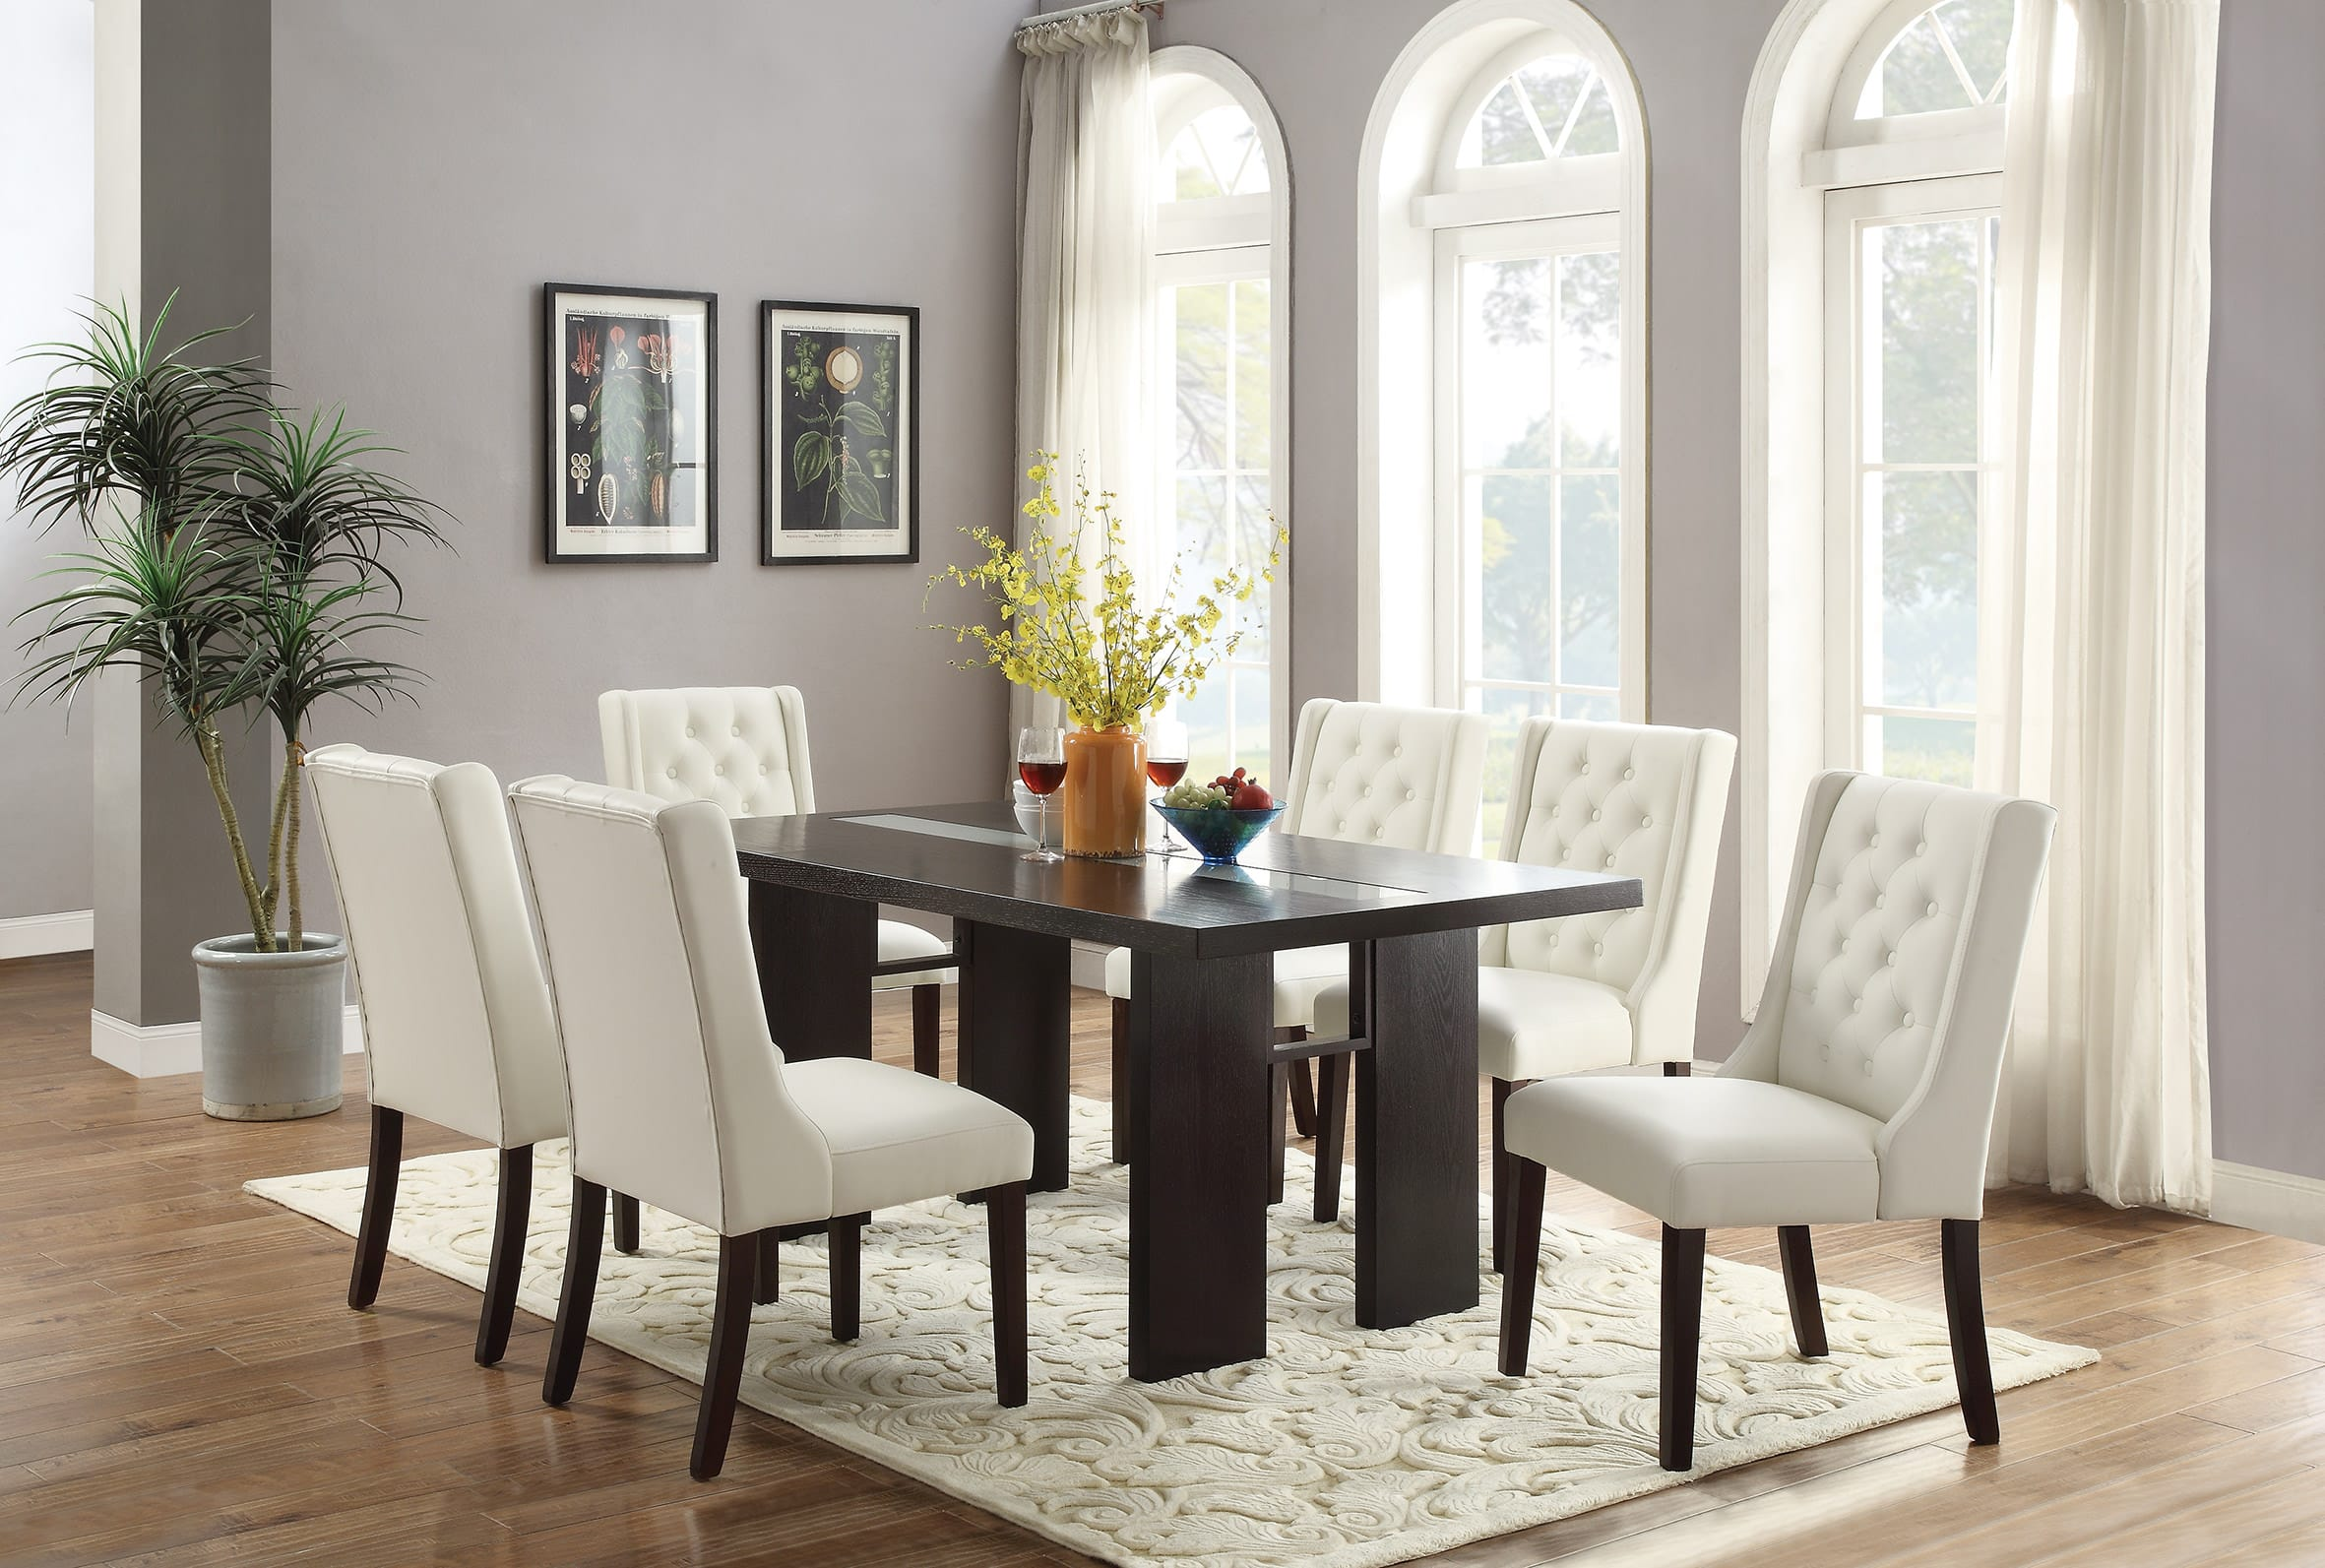 102ae116c0c7 F1503 White Dining Chair (Set of 2) by Poundex